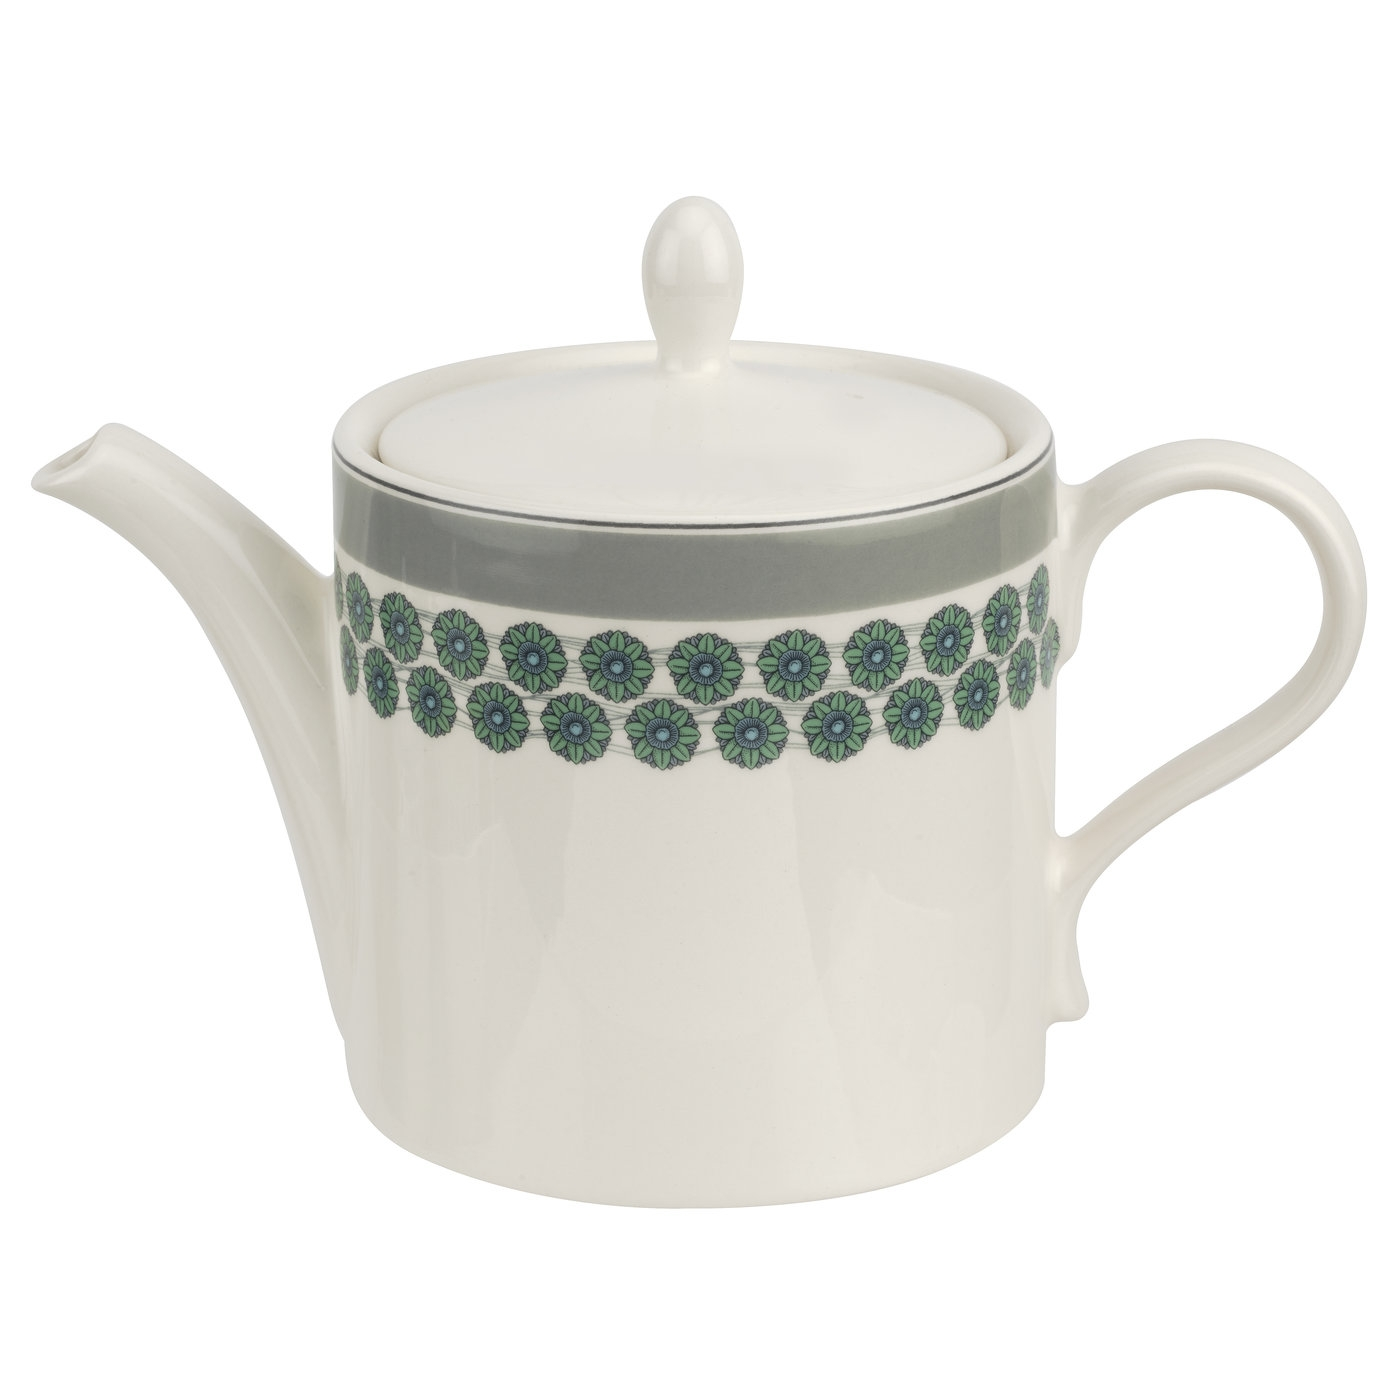 Portmeirion Westerly Grey 2 Pint Teapot image number 0